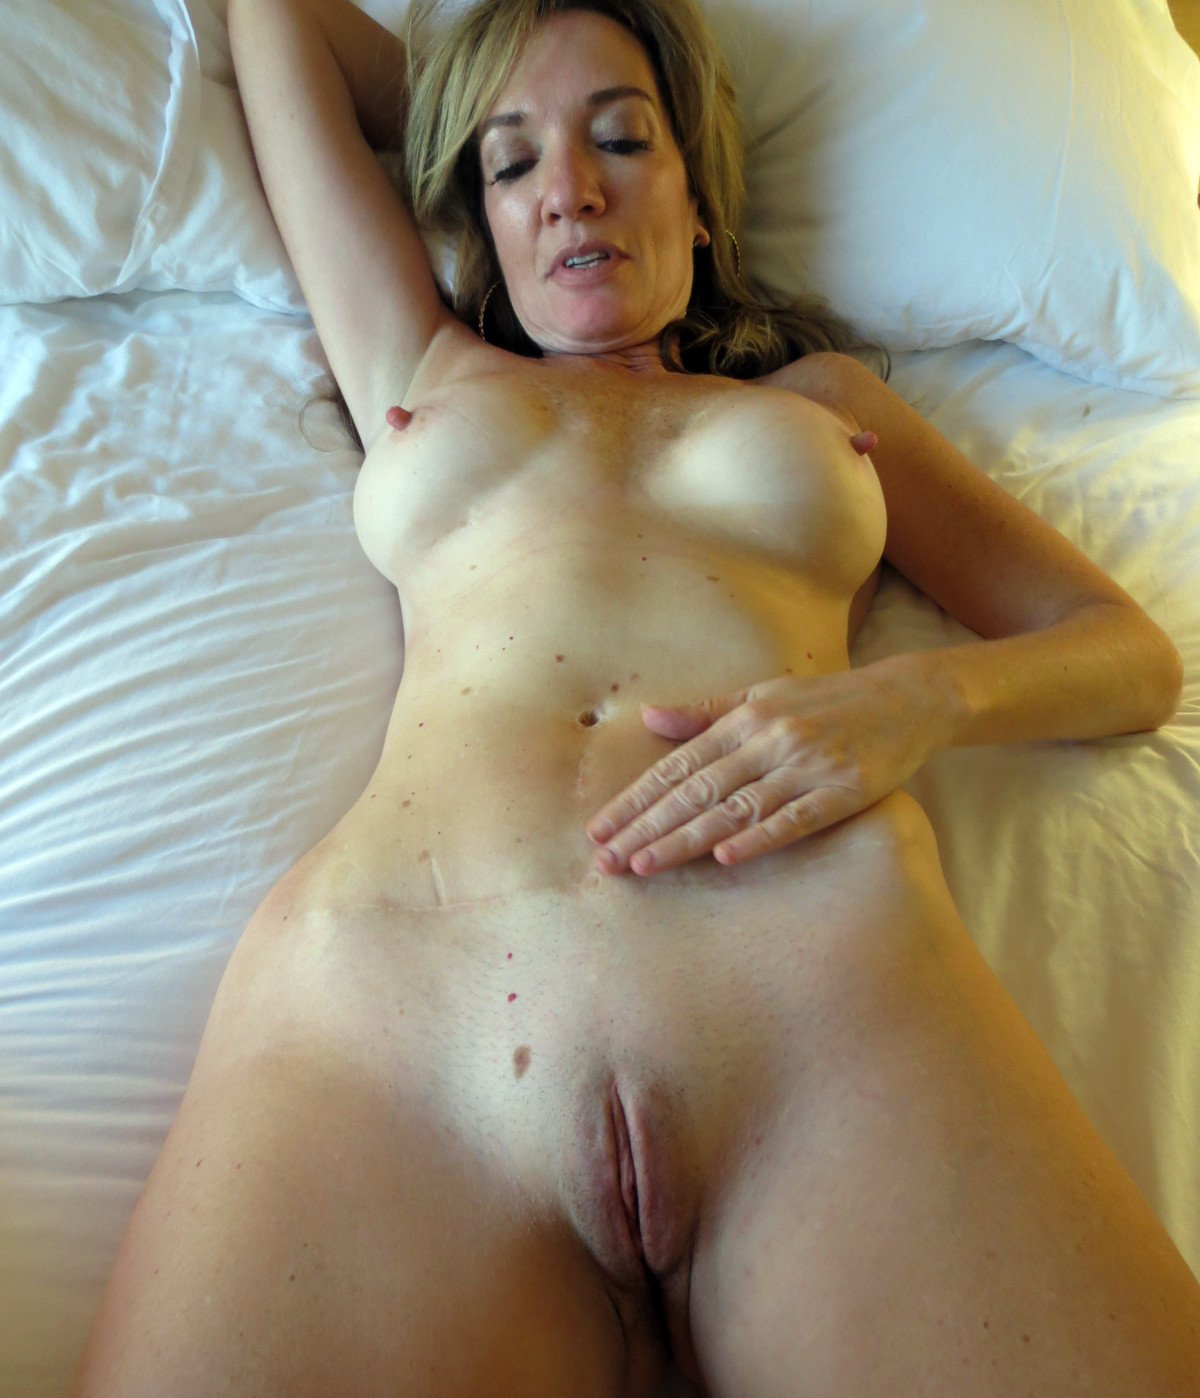 Real amateur wife submitted sex photos